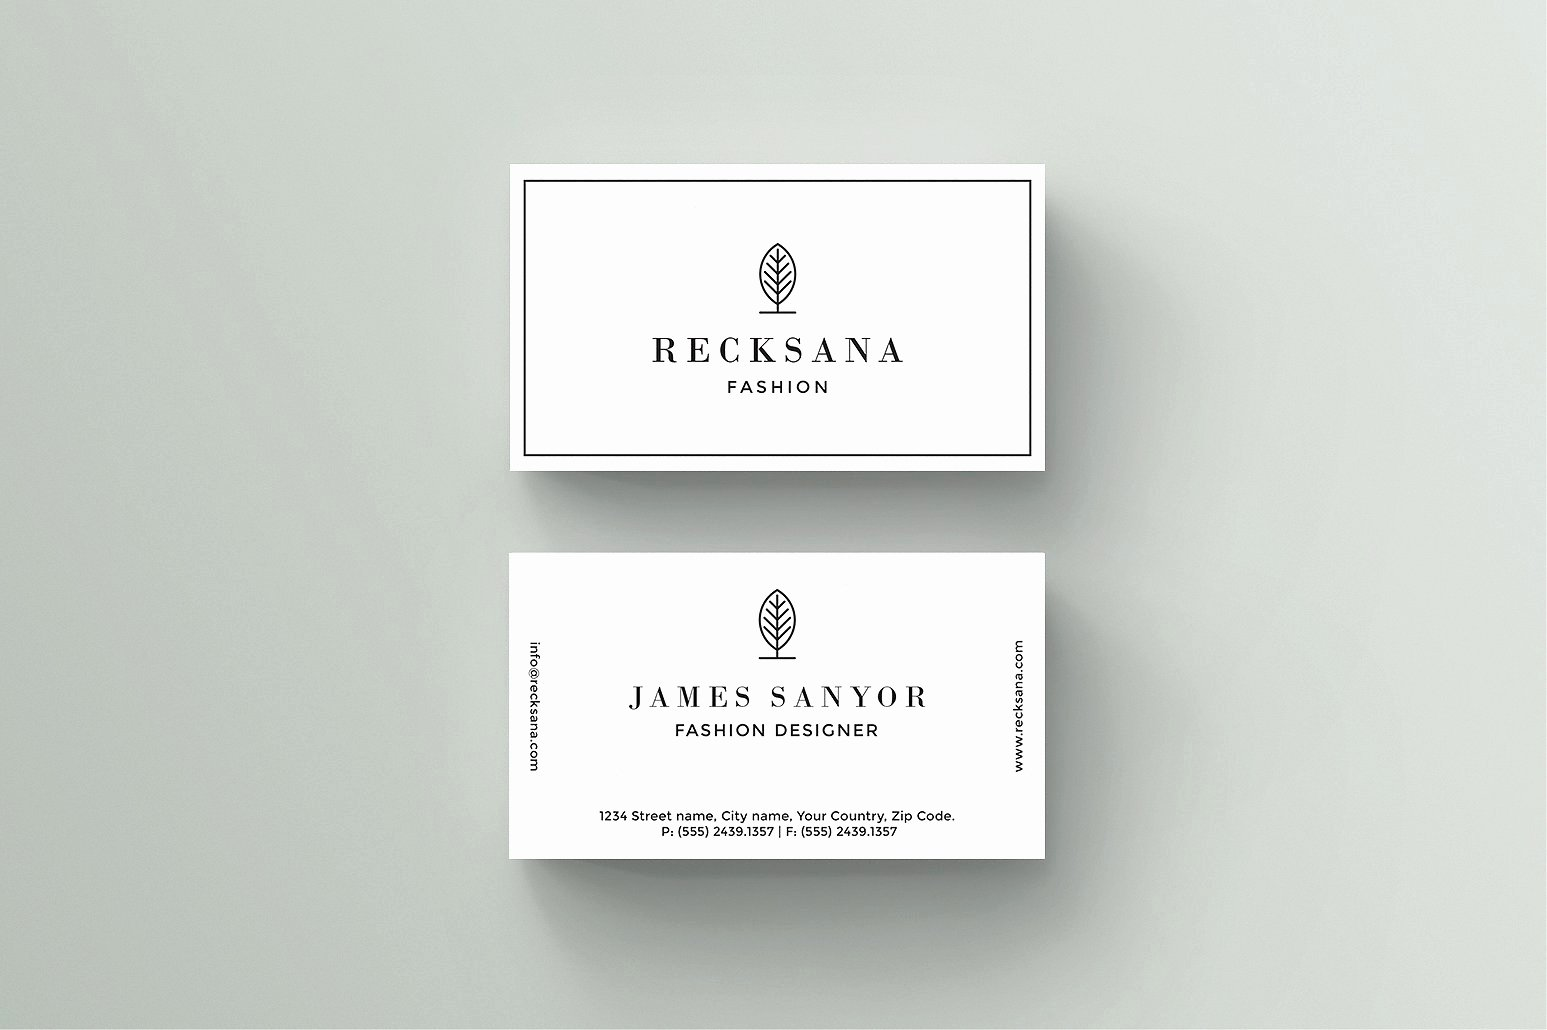 Indesign Business Card Template Free New Business Card Free Templates for Blank Indesign Business